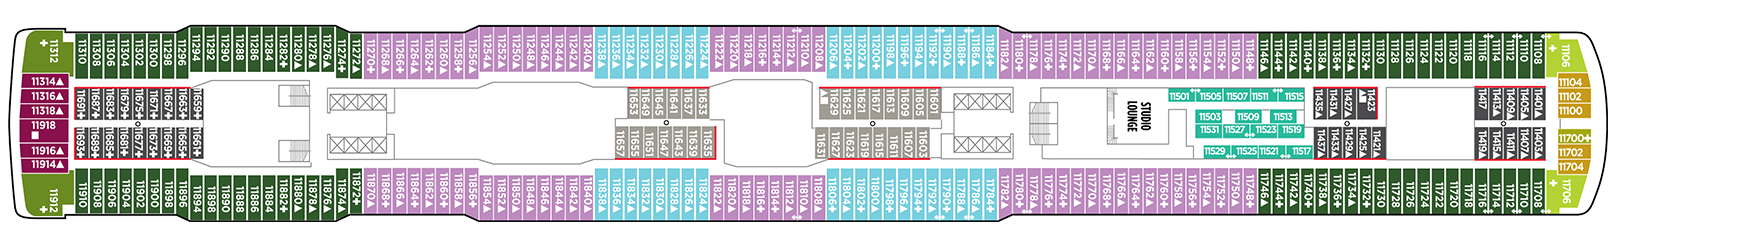 Norwegian Cruise Line Norwegian Escape Deck Plans Deck 11.png